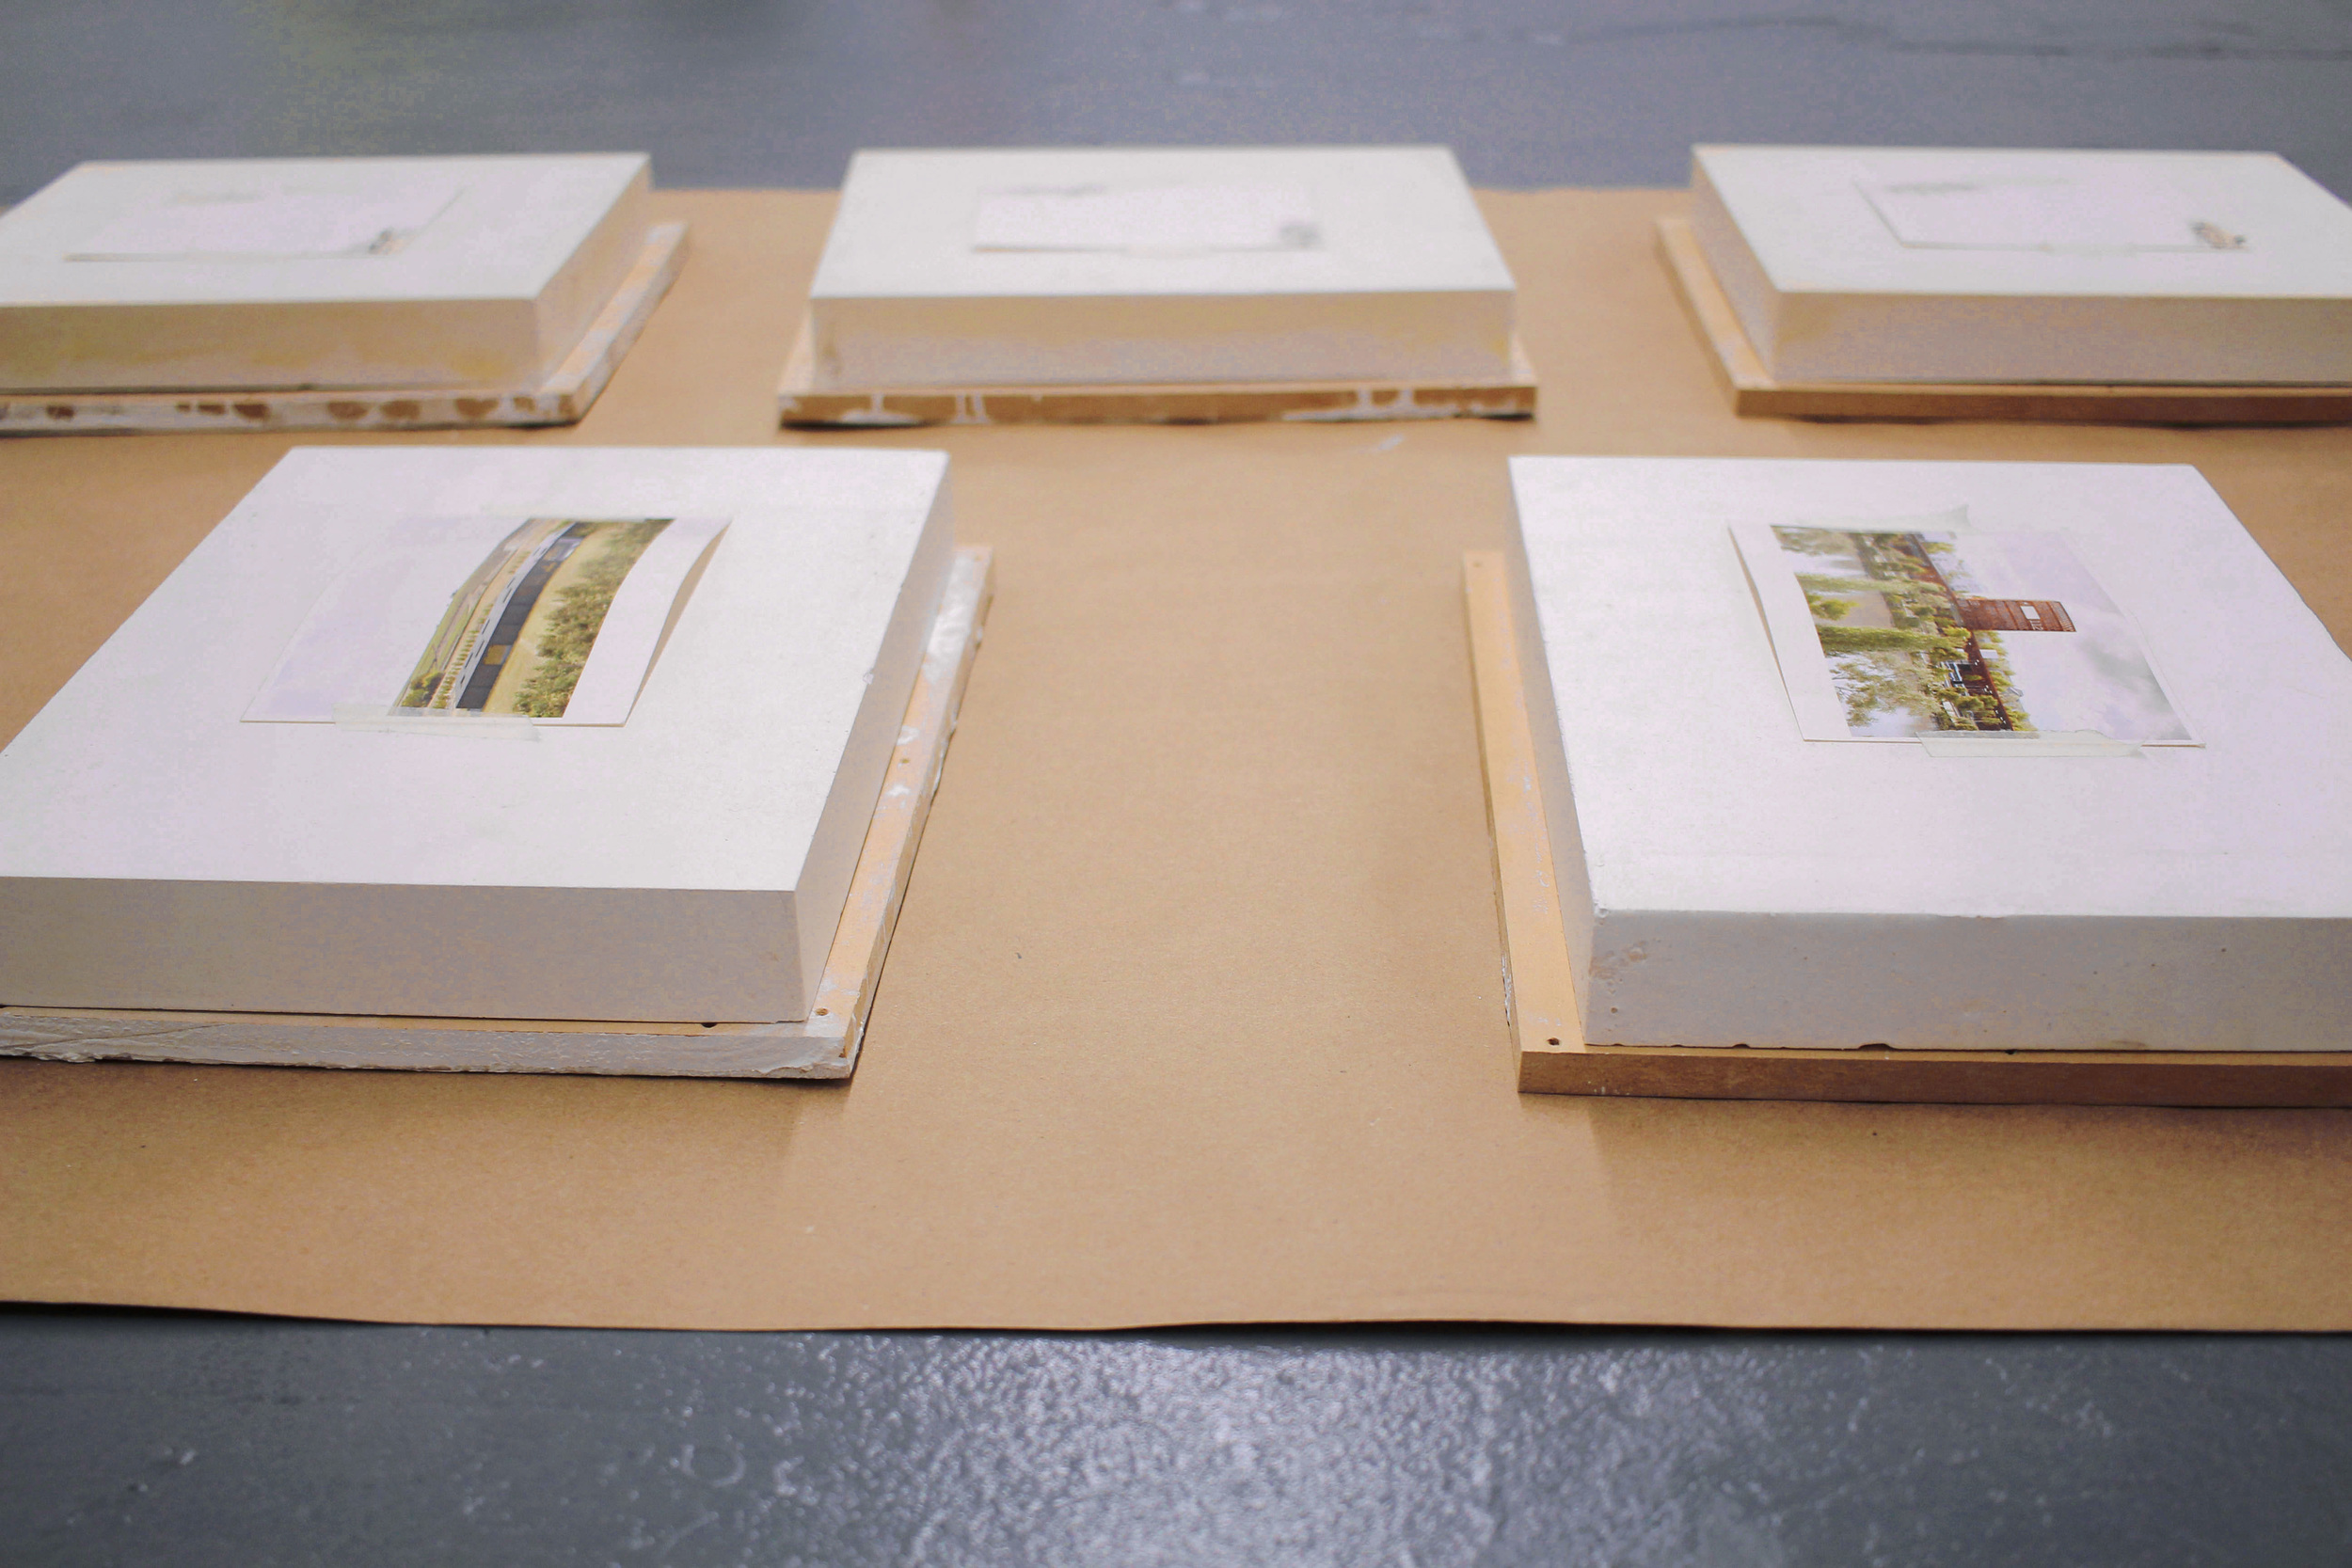 Study for the Structure of the Presentation of a Place , 2016, Plaster, postcards, masking tape, mdf panels, craft paper, Dimensions variable, Installation detail